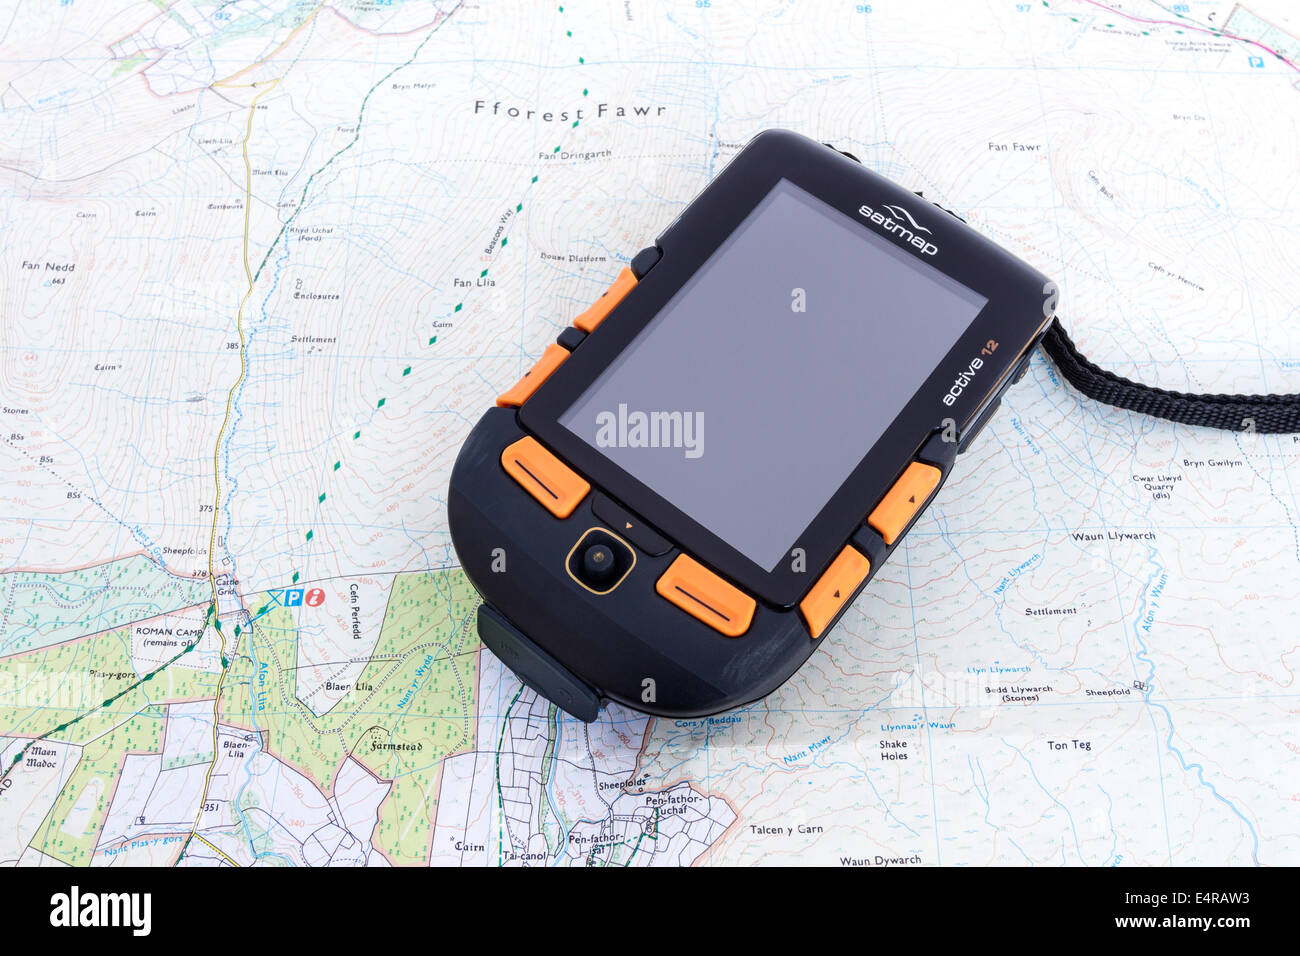 Satmap Active 12 GPS Unit and Ordnance Survey Map - Stock Image